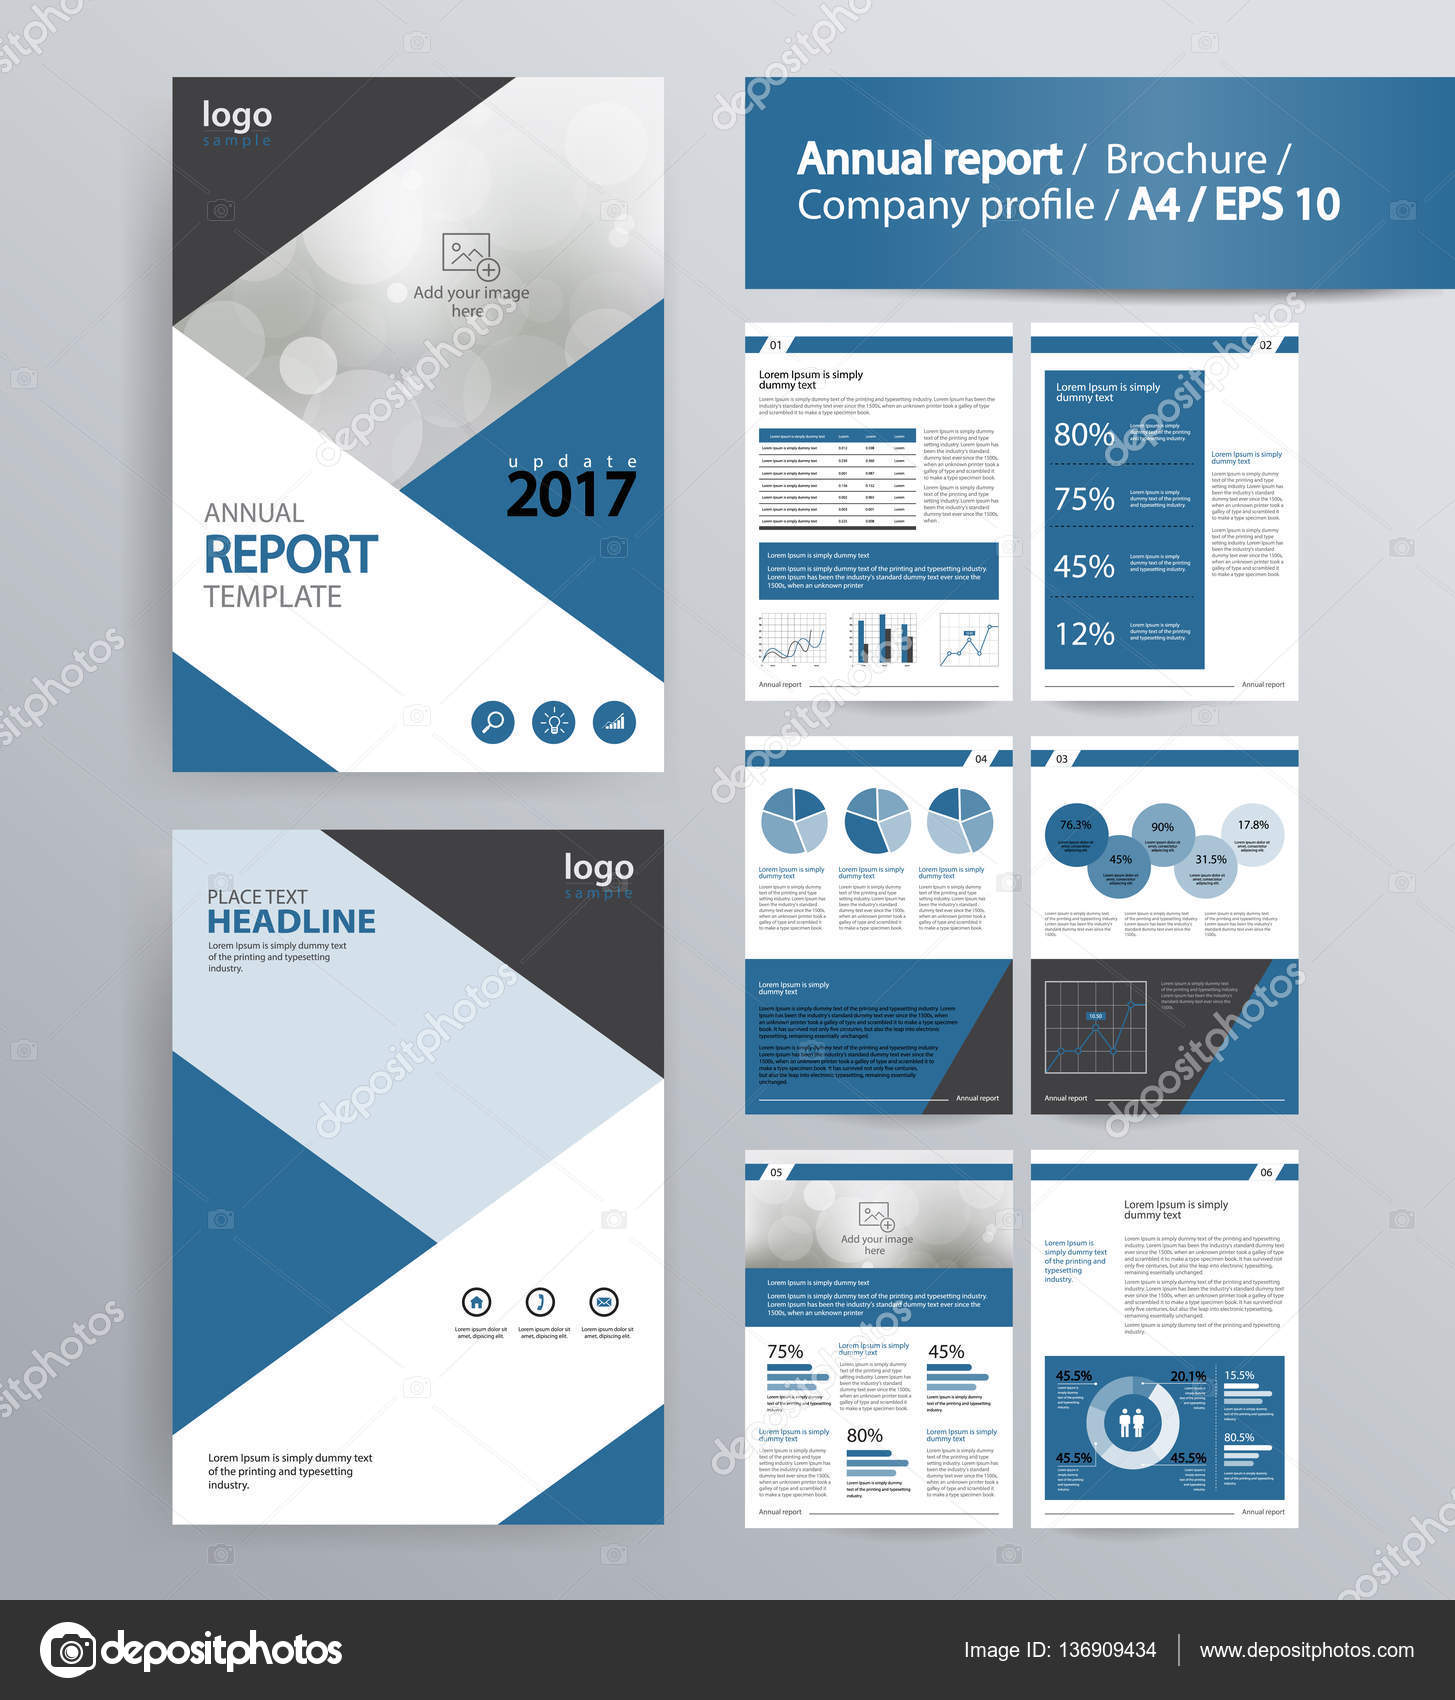 Company Profile, Annual Report, Brochure, And Flyer Layout Template. With  Info Graphic